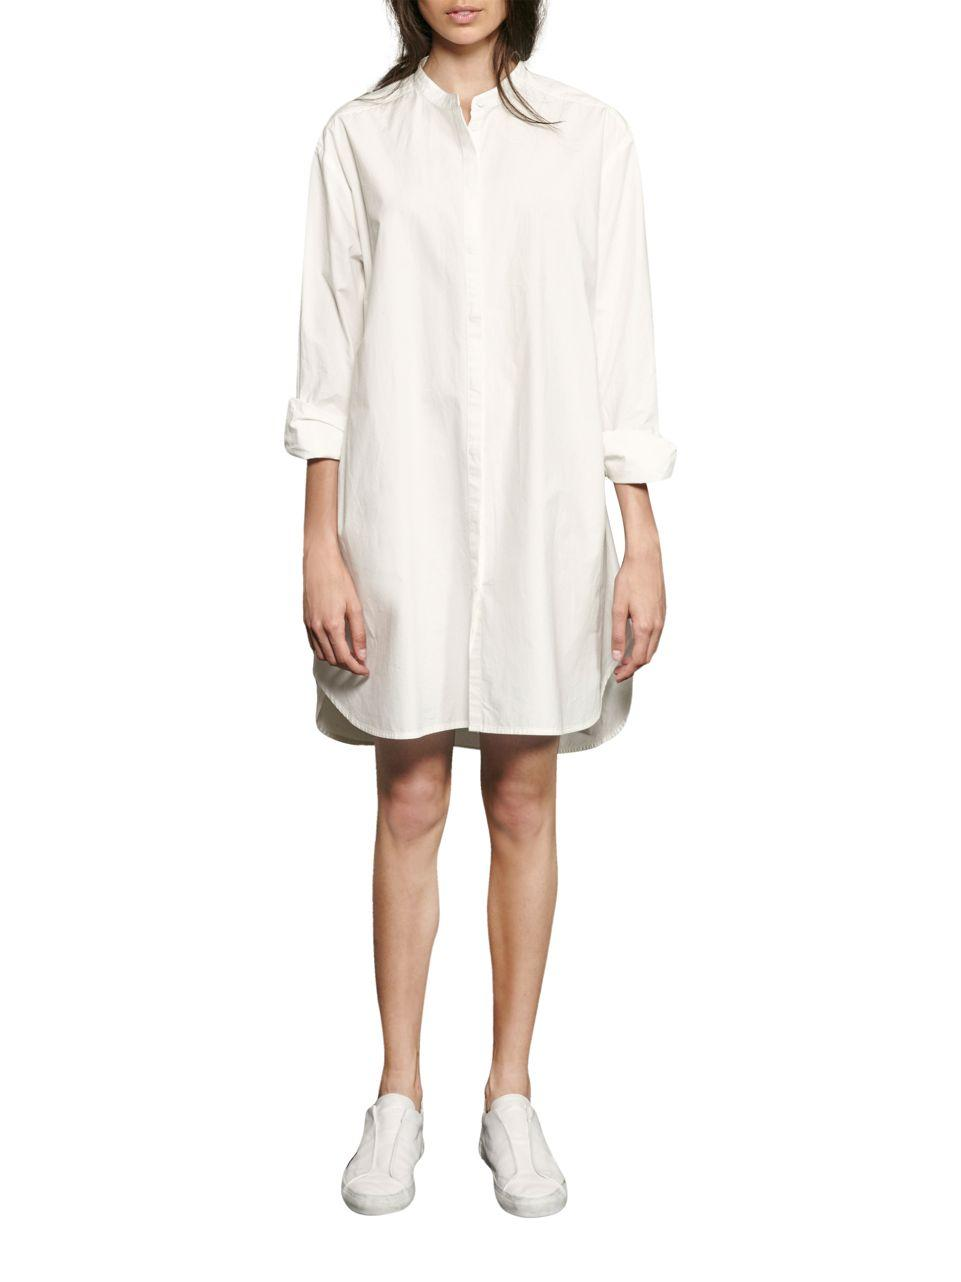 French connection willis button front shirt dress in white for French connection shirt dress